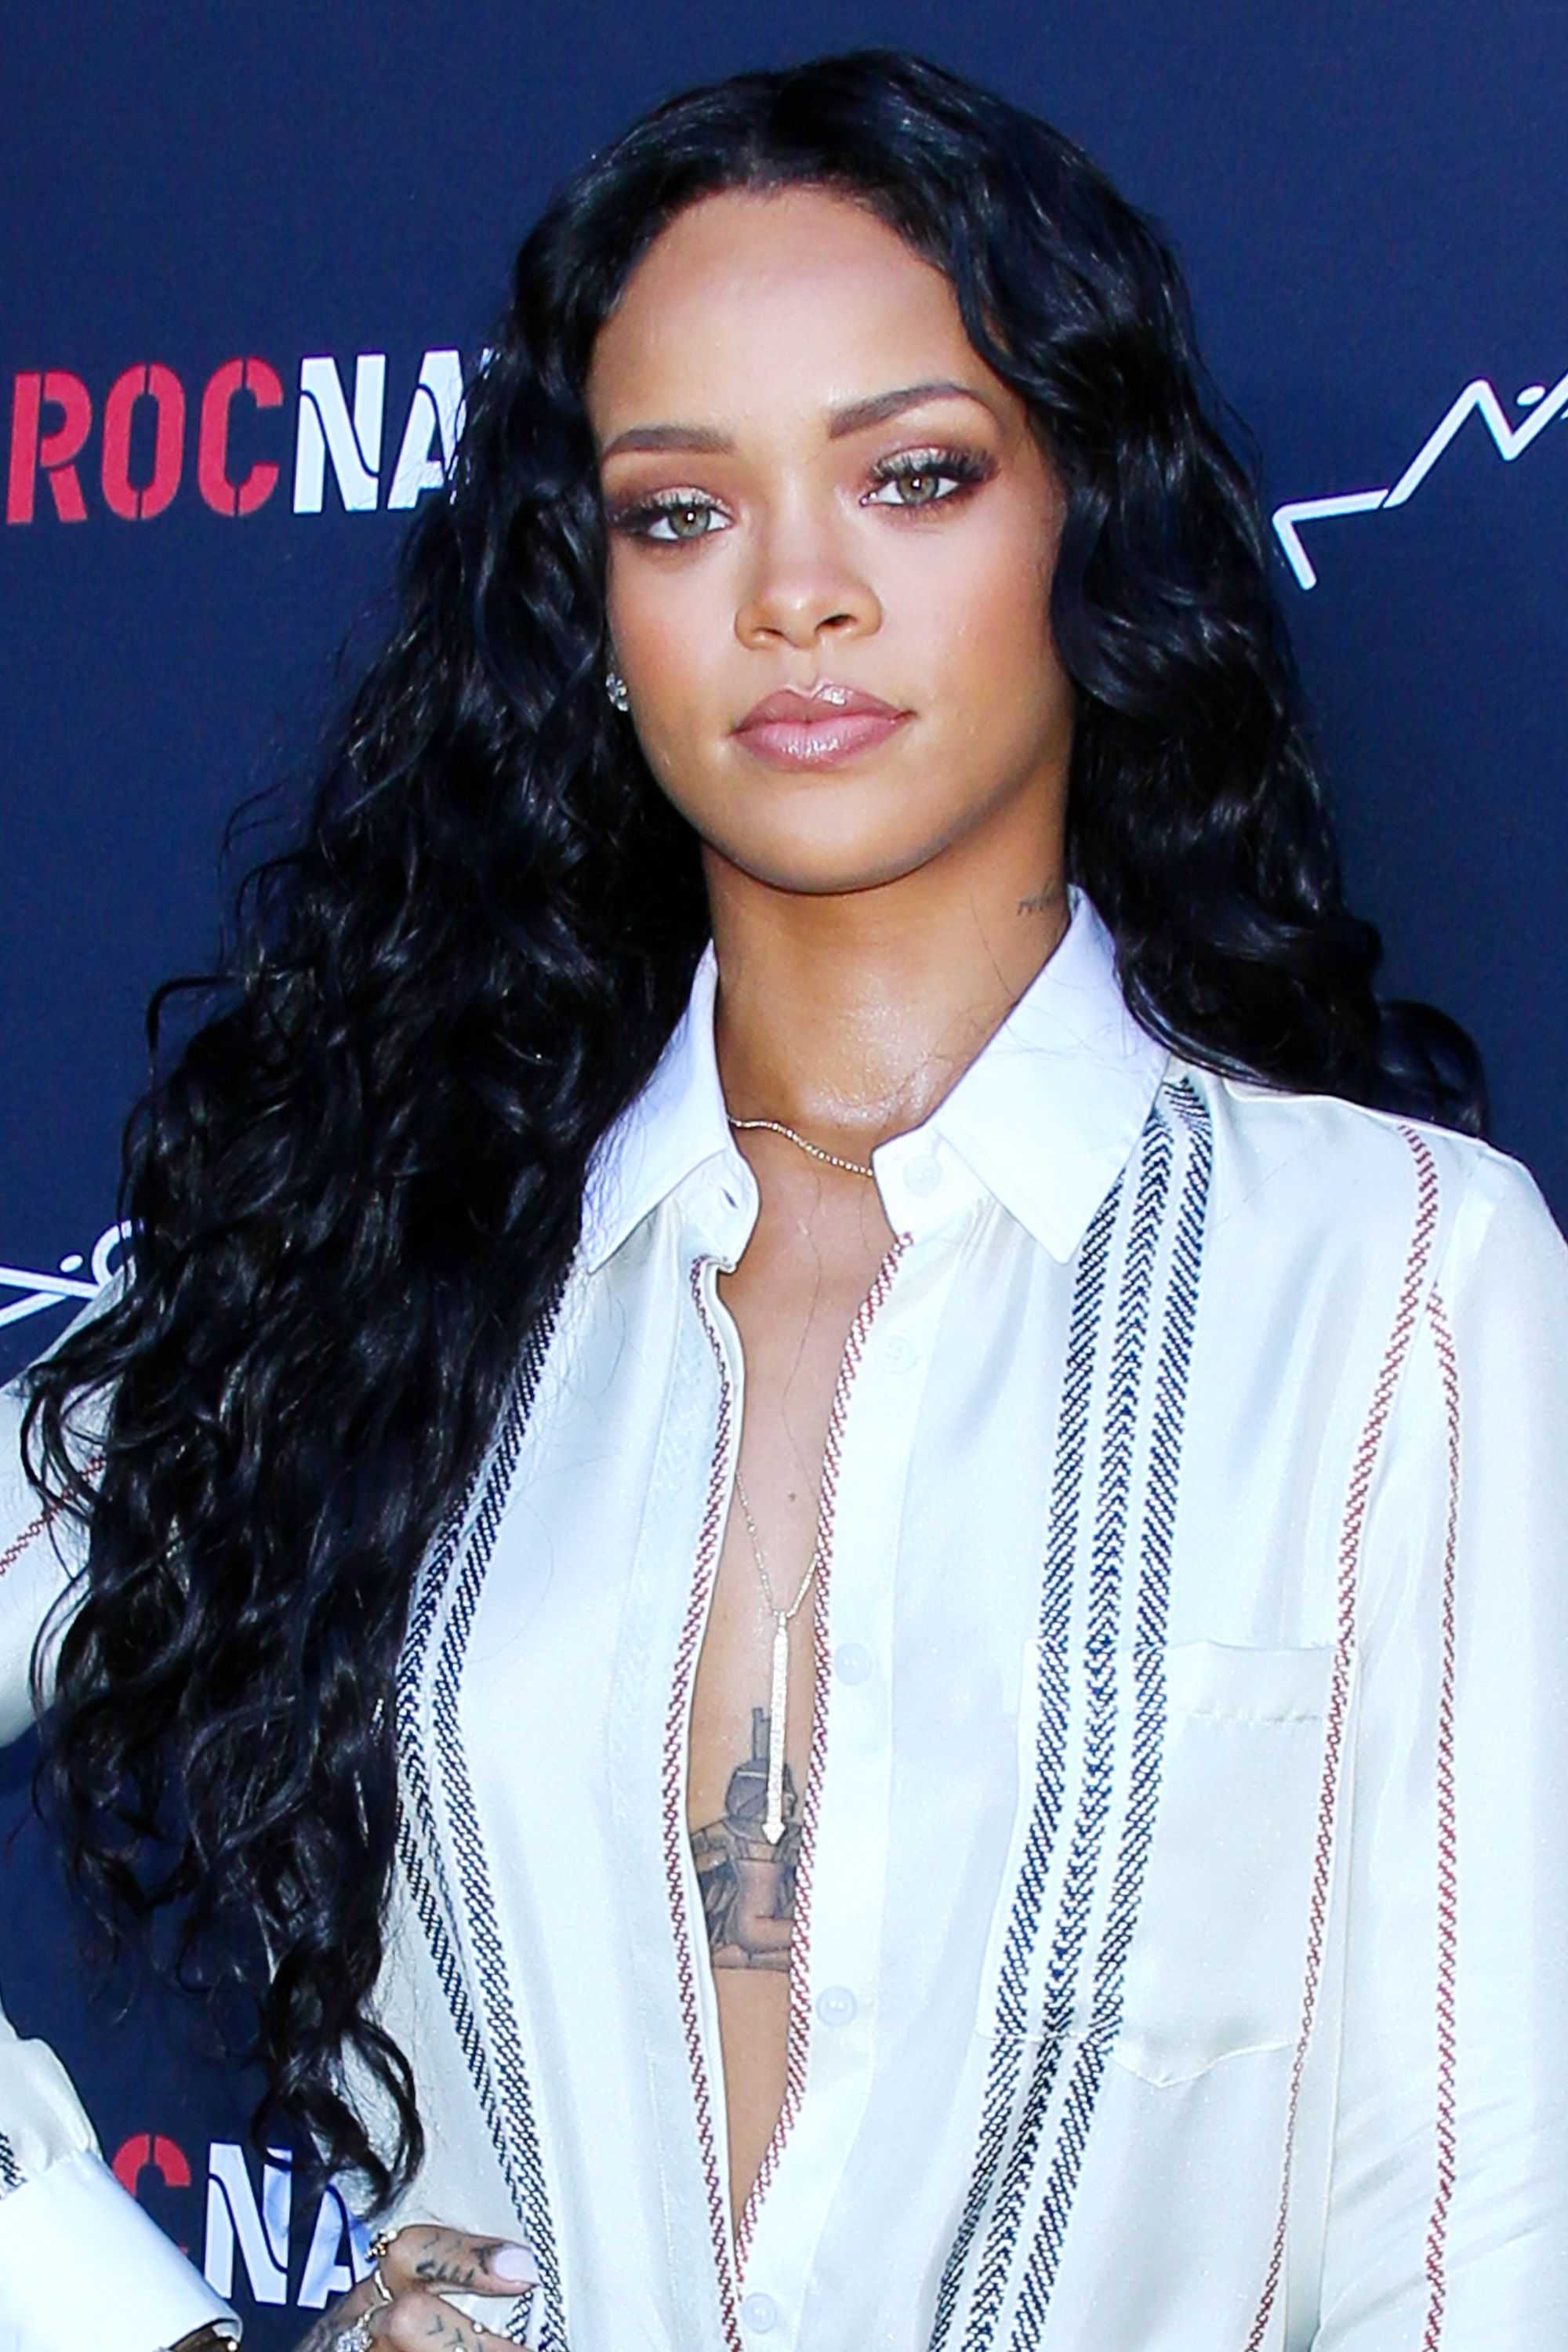 50 best rihanna hairstyles our favorite rihanna hair looks of 50 best rihanna hairstyles our favorite rihanna hair looks of all time urmus Image collections